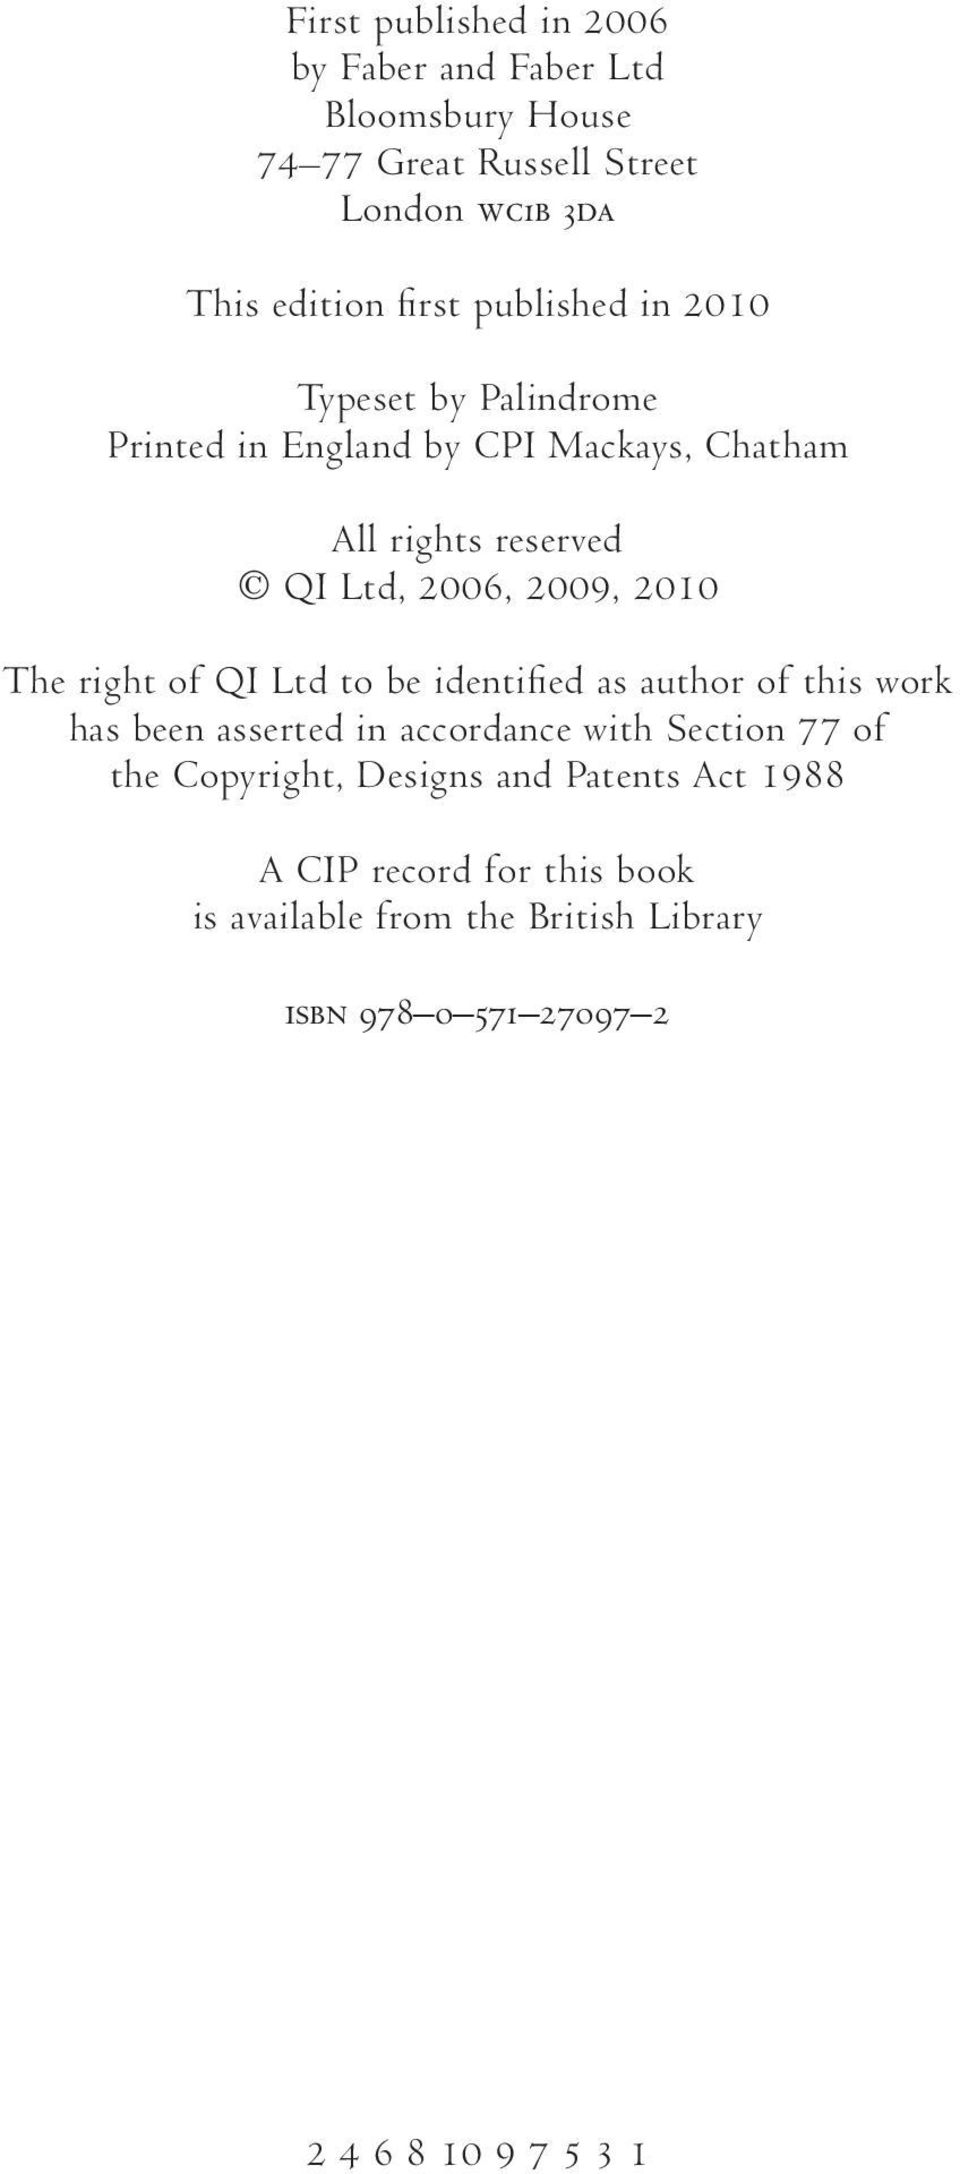 The right of QI Ltd to be identified as author of this work has been asserted in accordance with Section 77 of the Copyright,